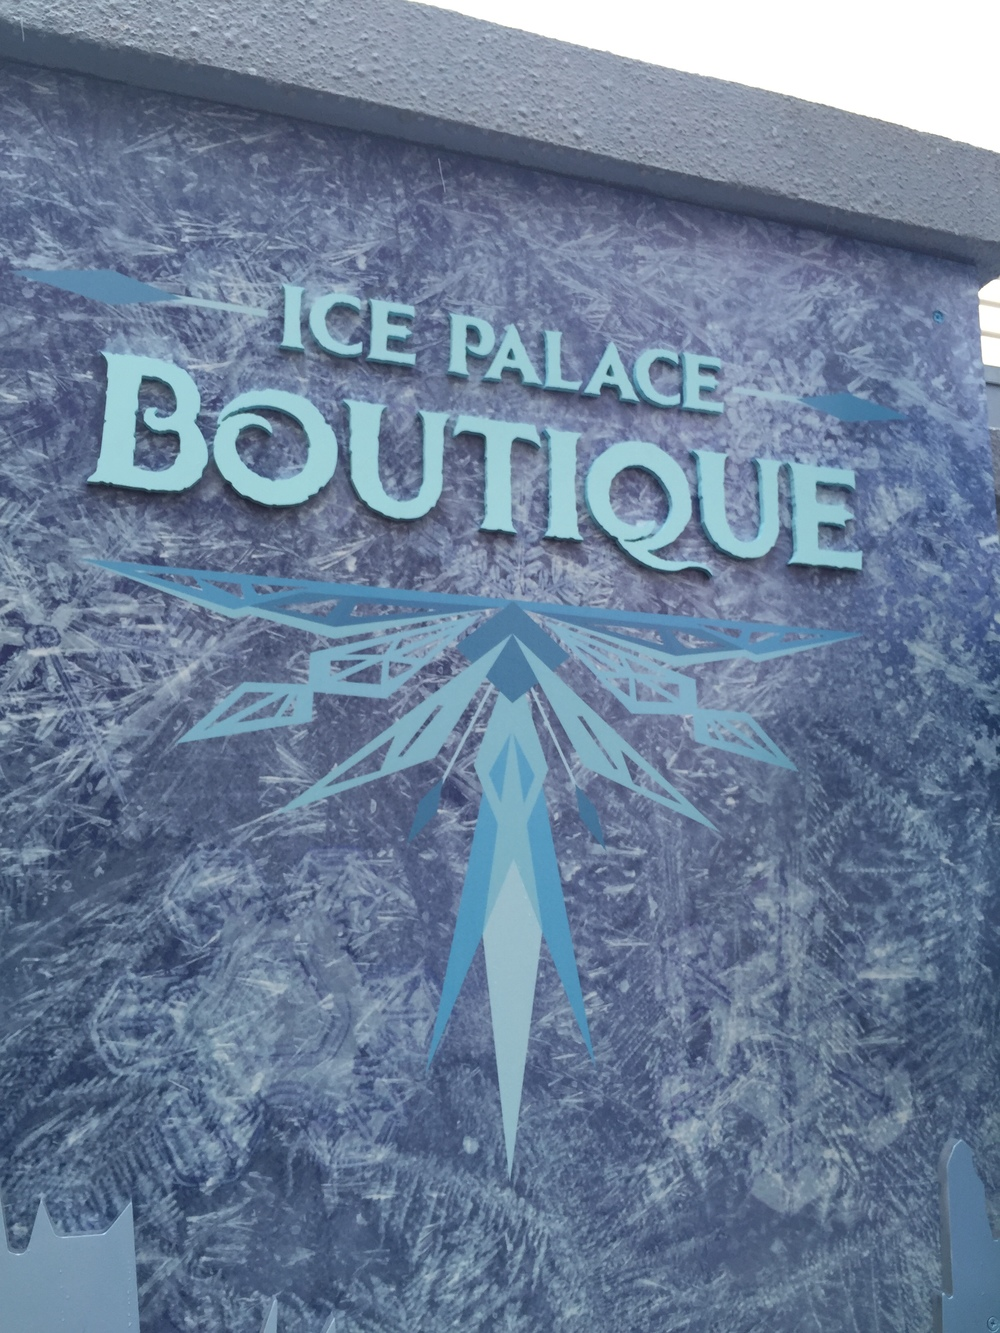 Disney's Ice Palace Boutique at Hollywood Studios